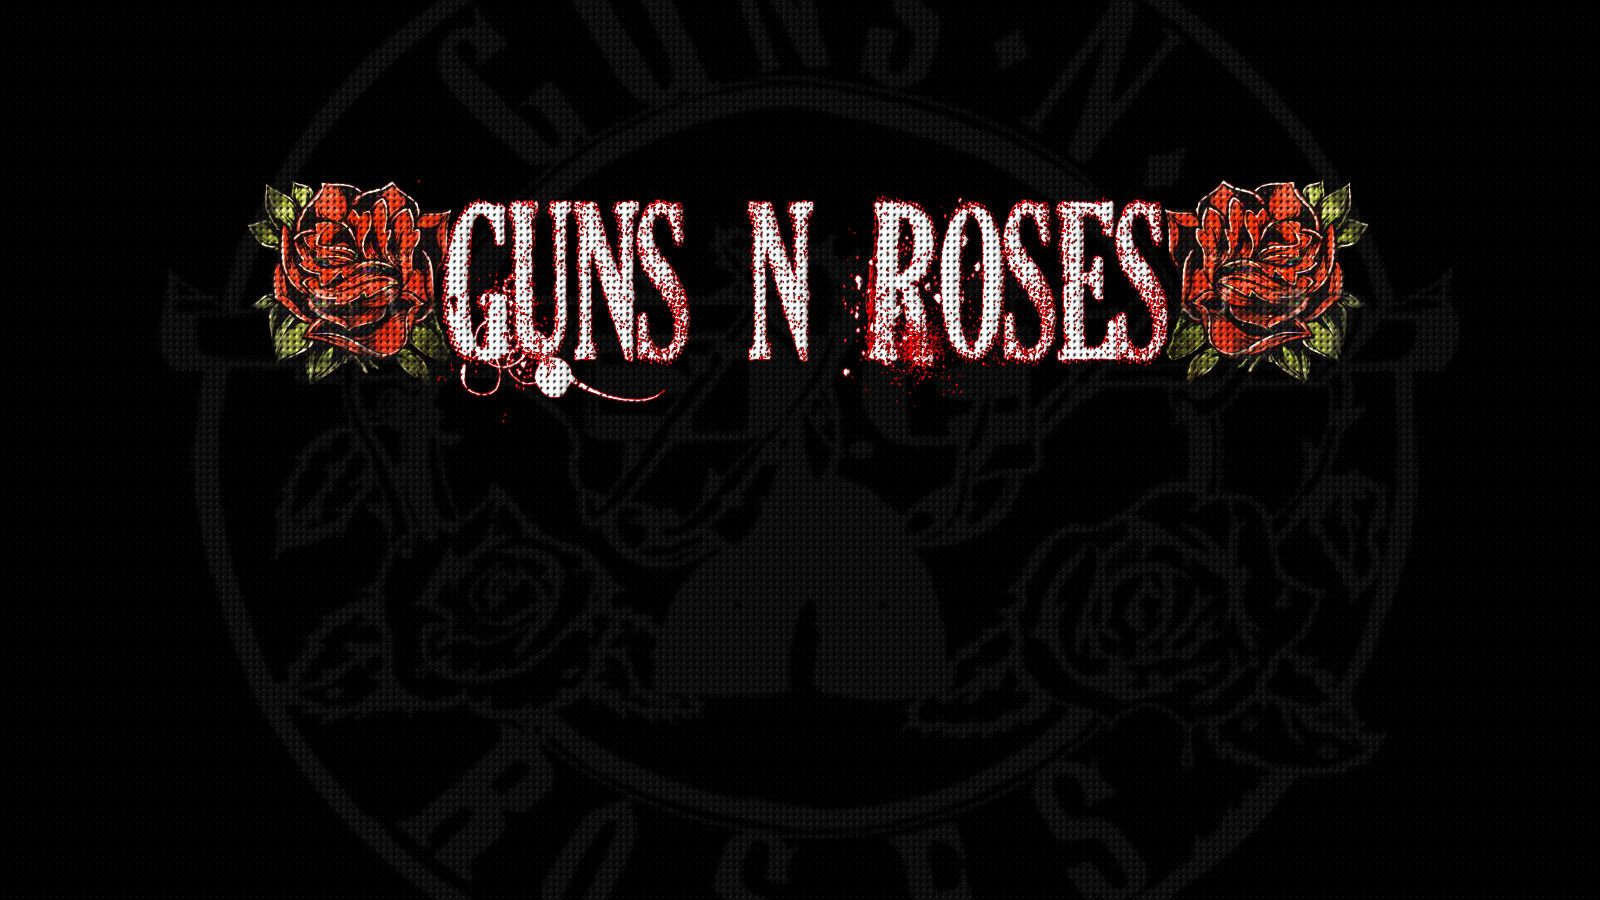 Free Download Guns N Roses Wallpaper Id 256838 Hd 1600x900 For